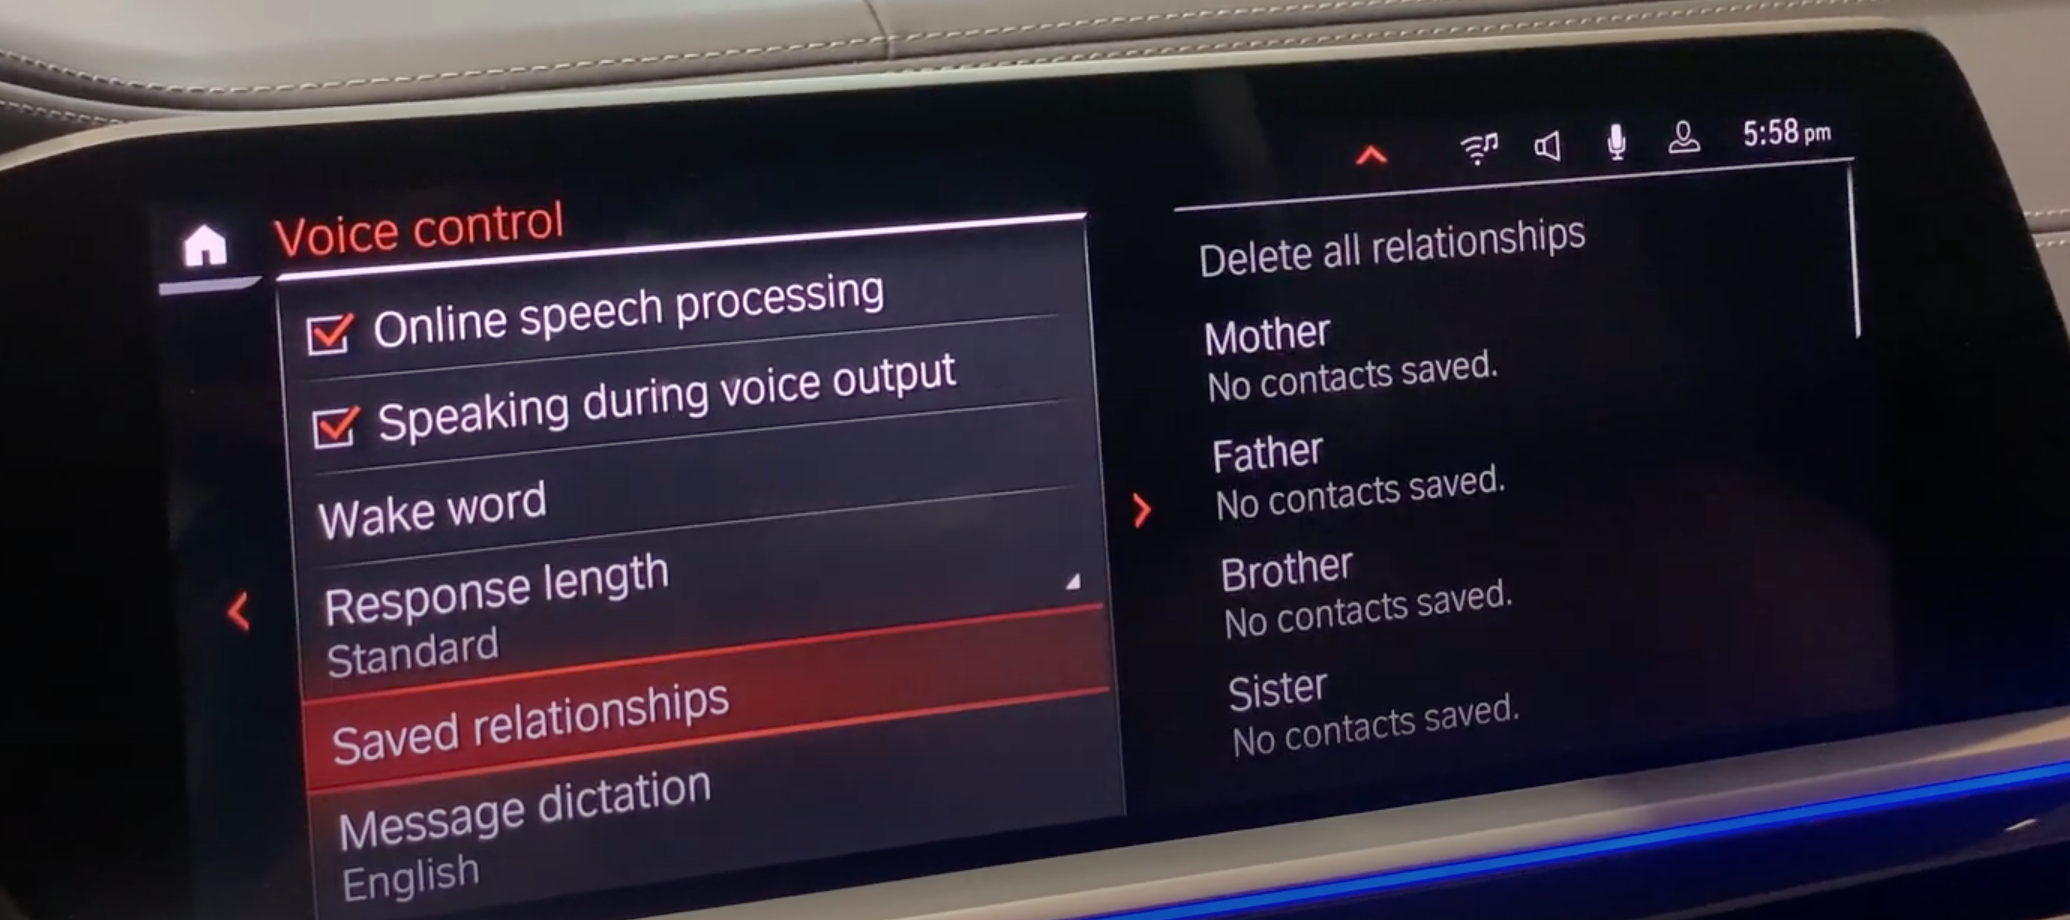 A list of saved relationships for the voice assistant to recognize such as mother, father, sister and brother